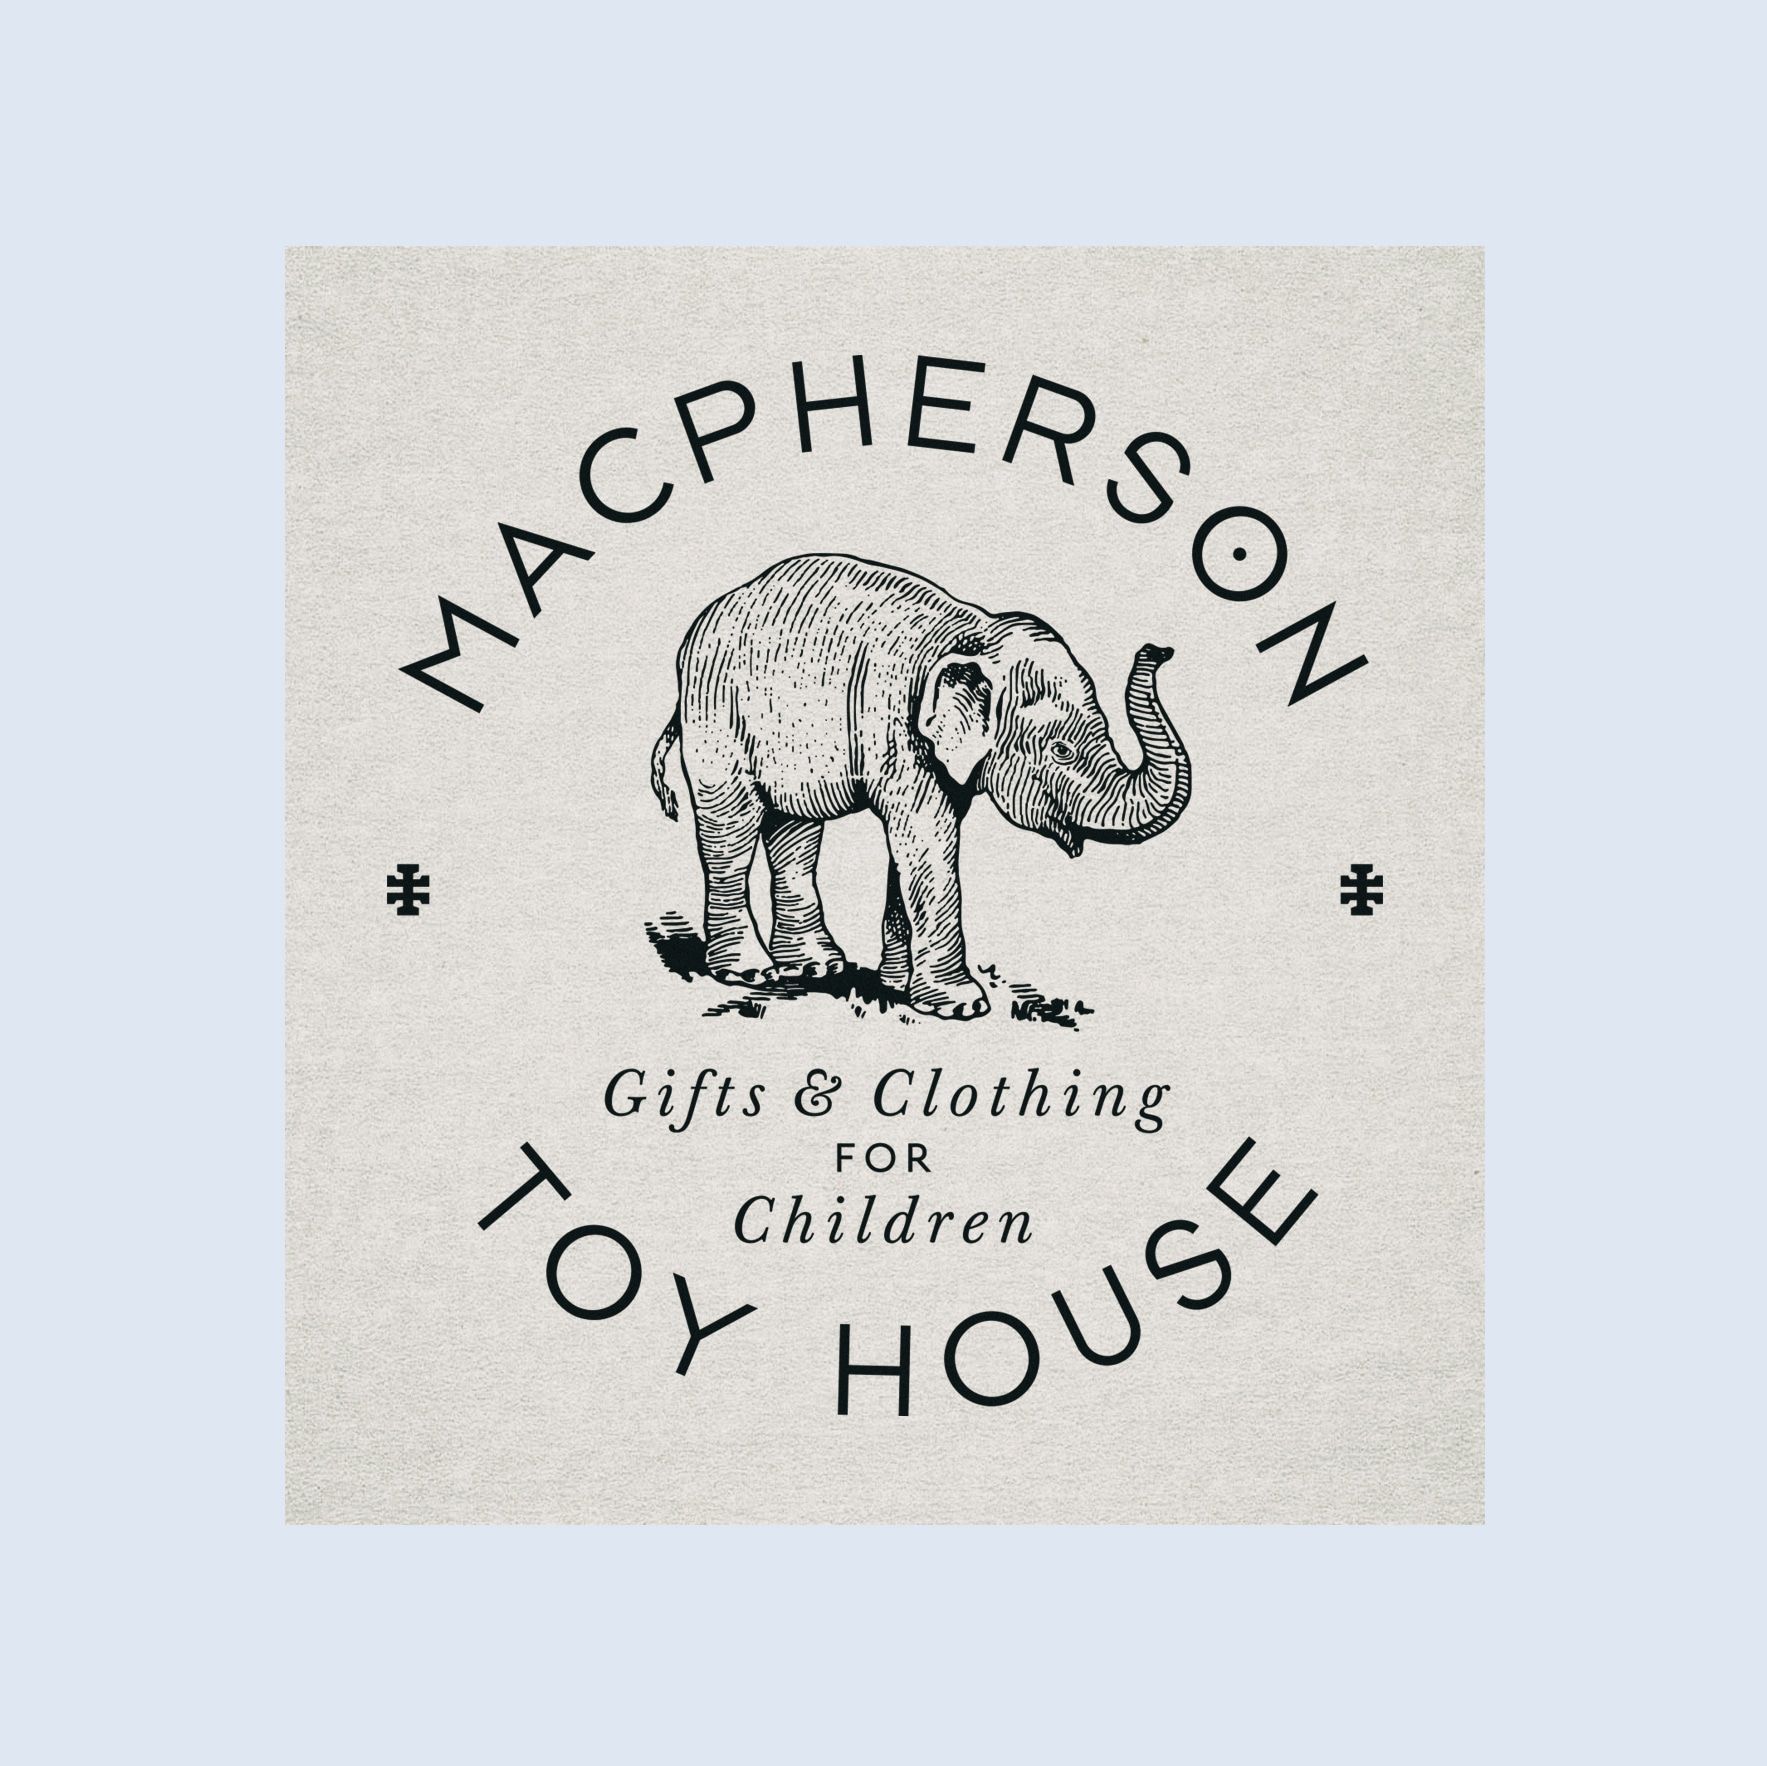 MacPherson Toy House - branding, creative direction, logo design, photography, publication design